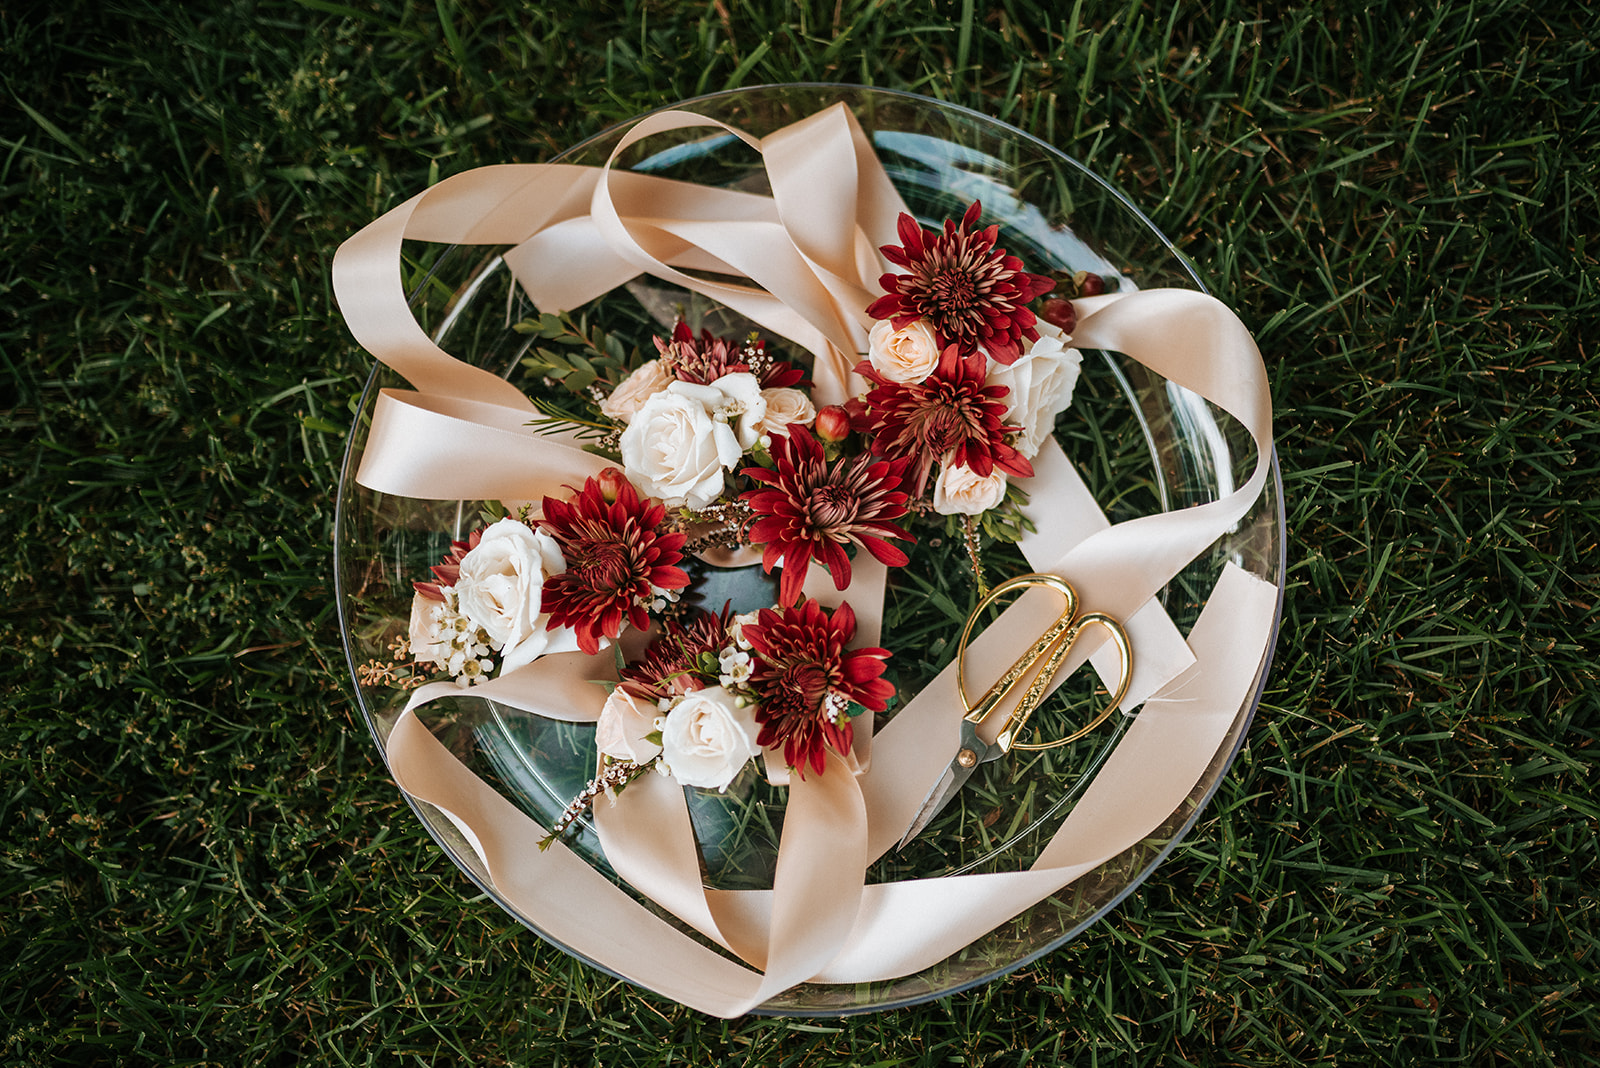 overthevineswisconsinwedding_0421.jpg